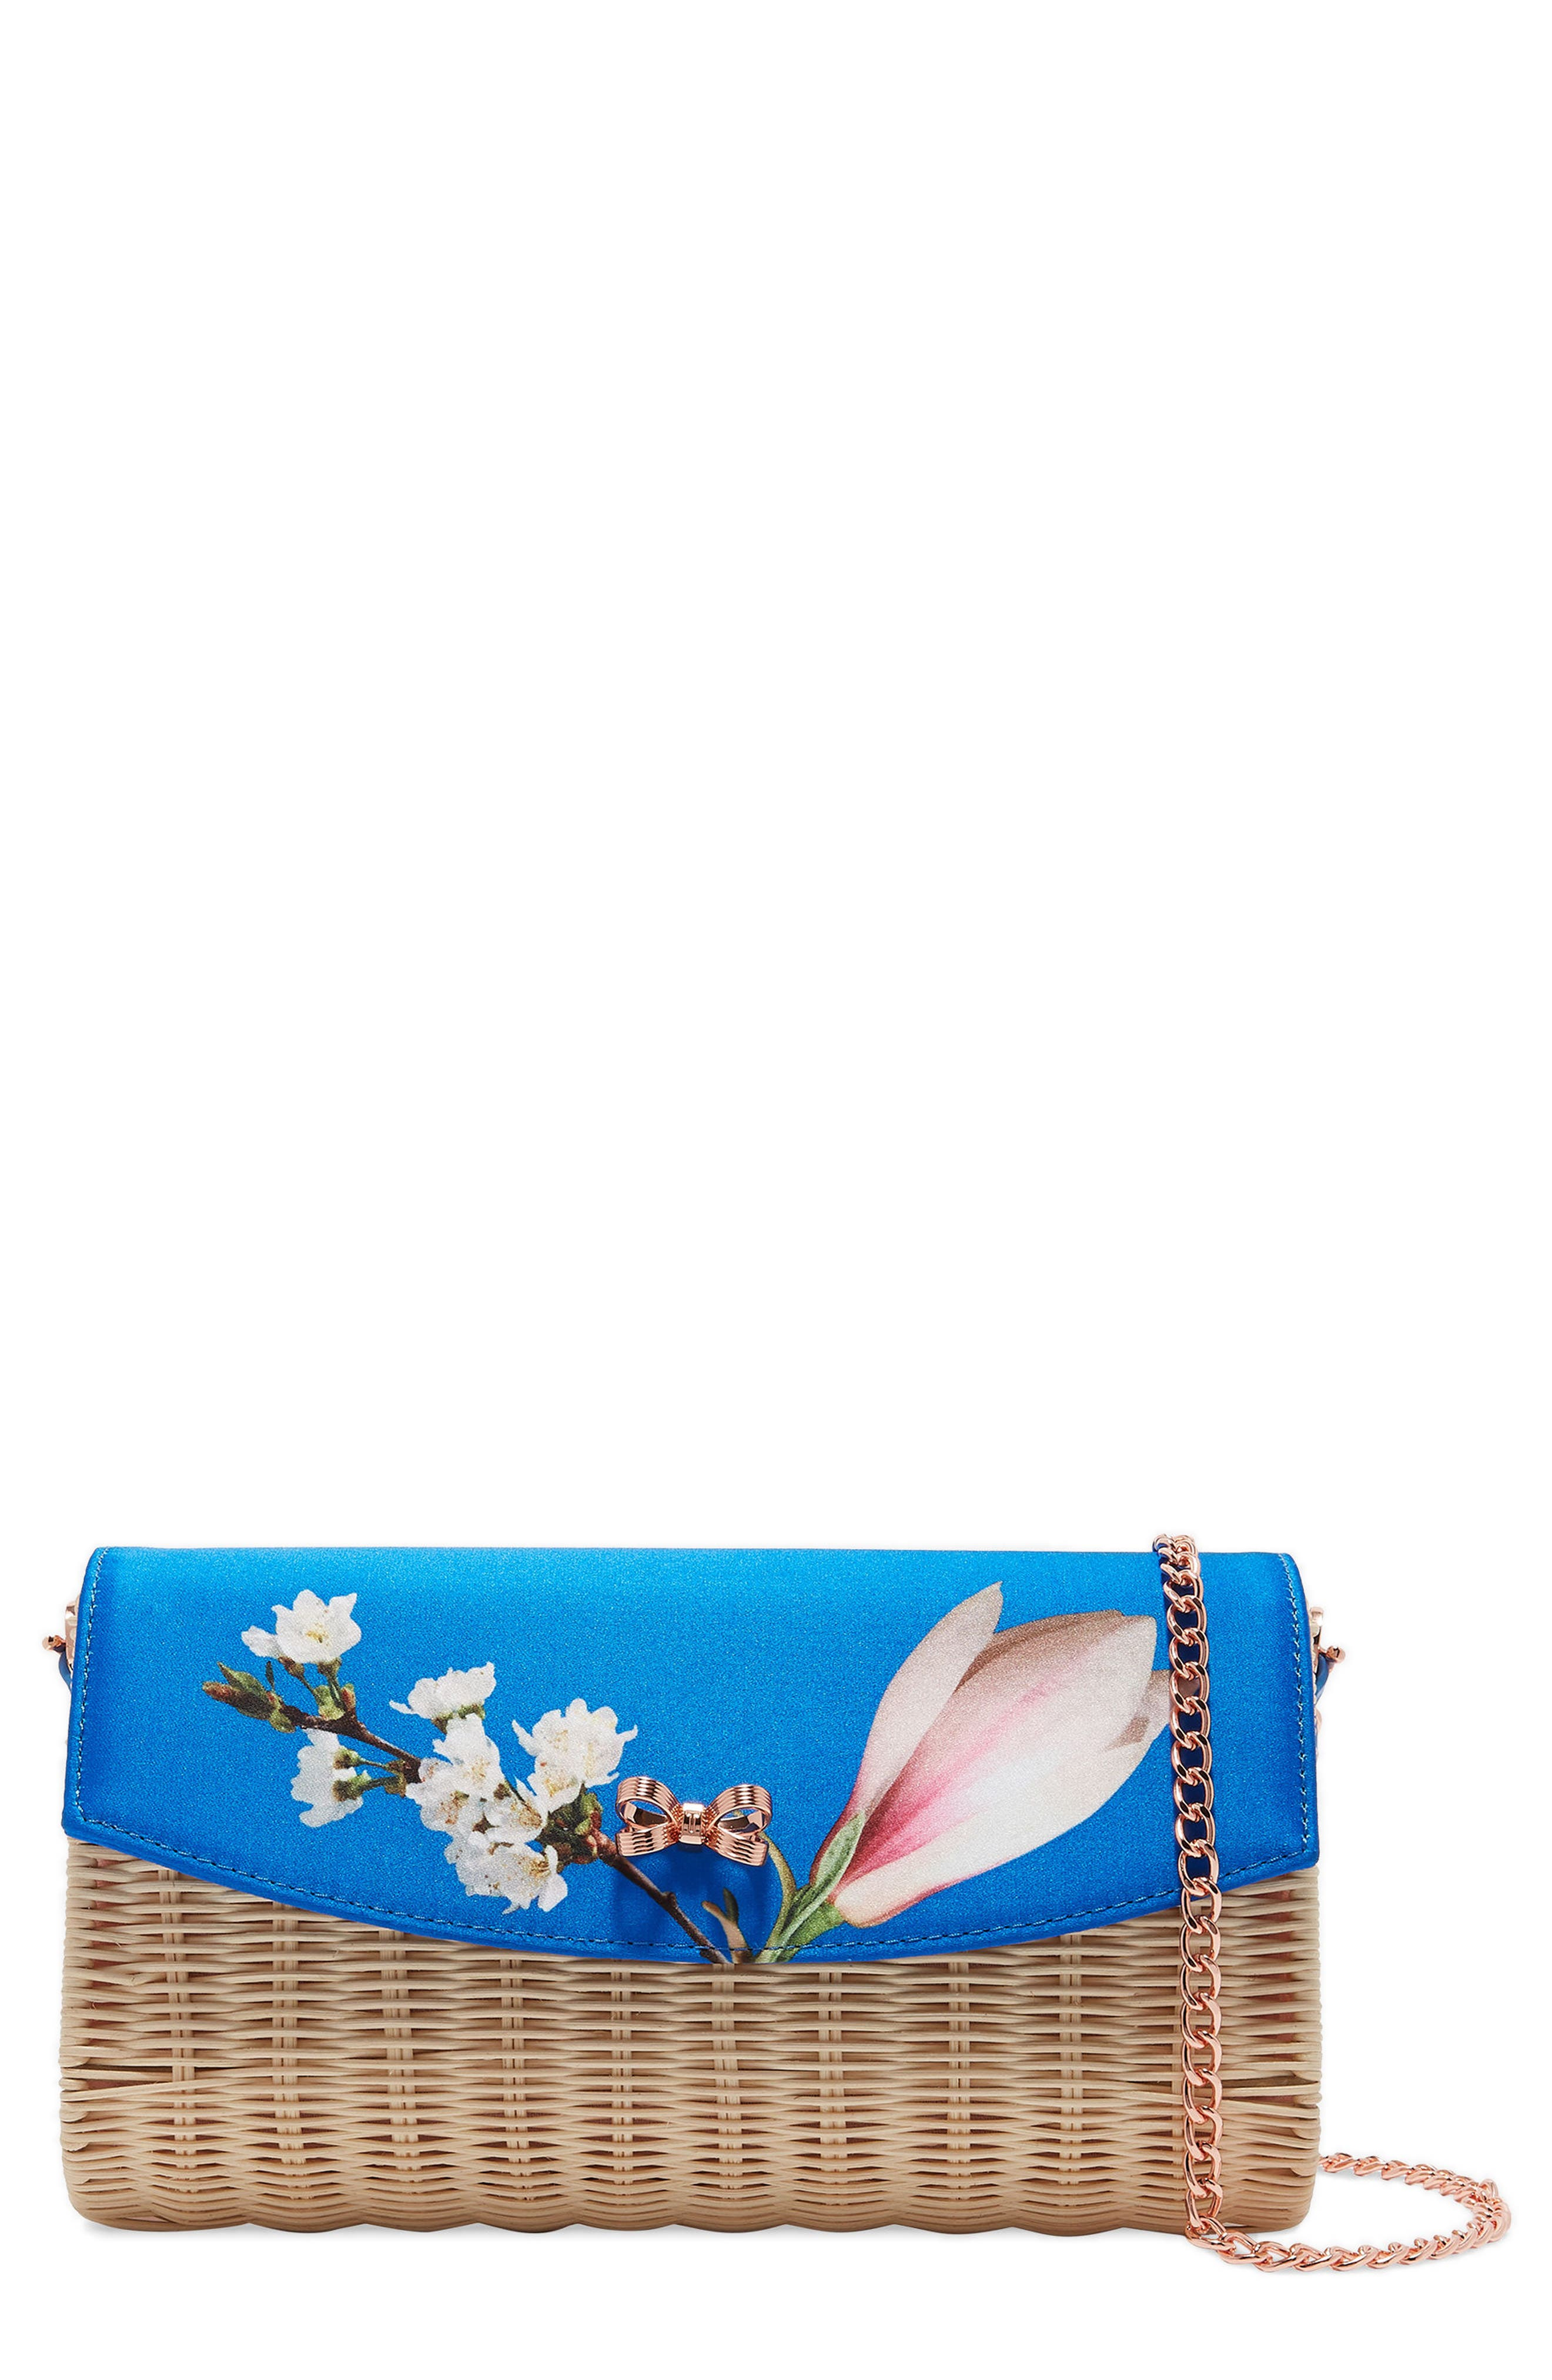 Ted Baker London Haarley Harmony Woven Rattan Clutch